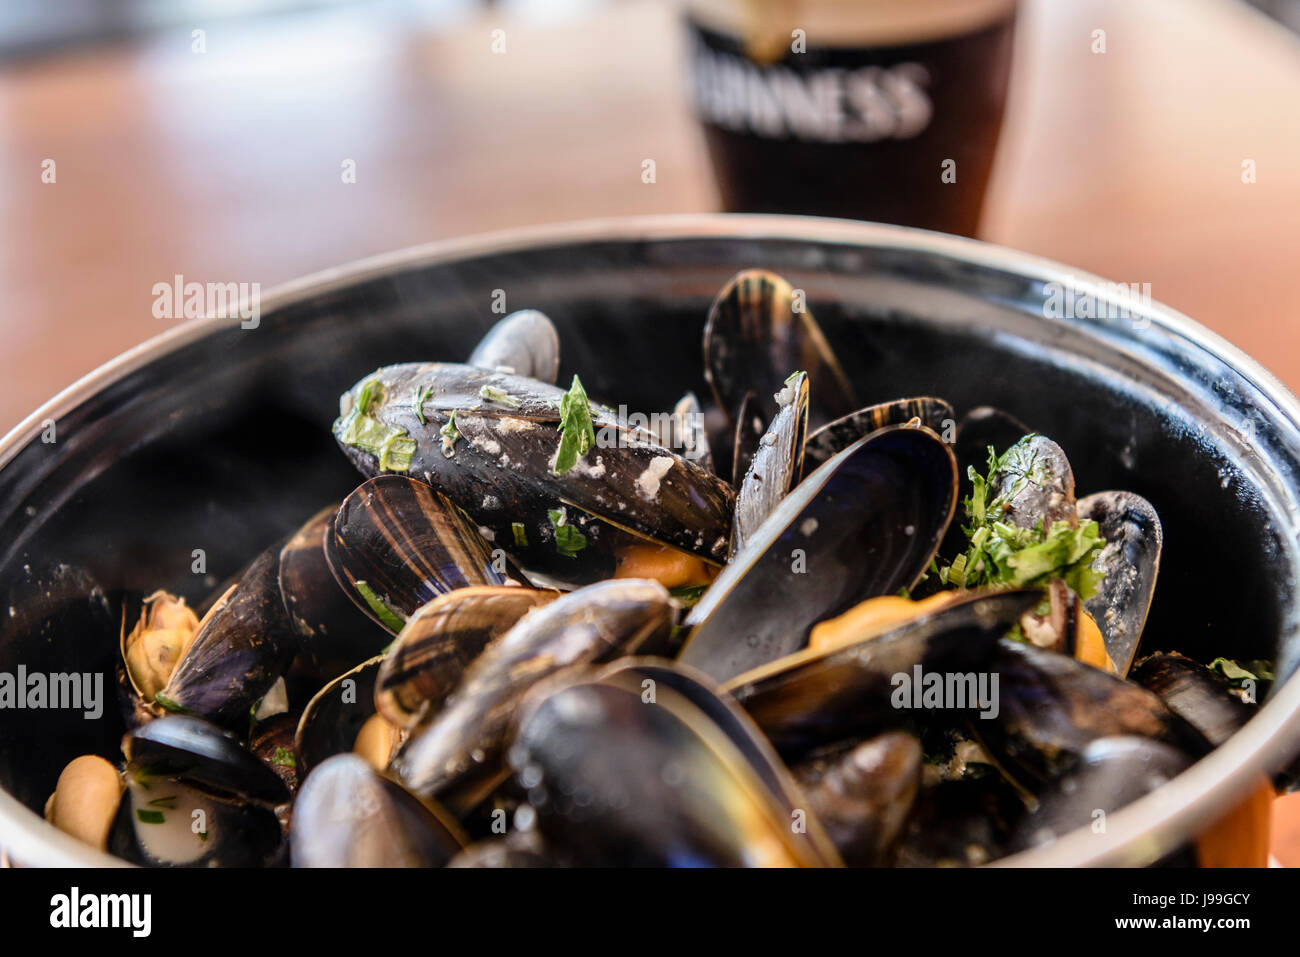 A bowl of mussels with garlic, white wine and parsley with a pint of Guinness. - Stock Image